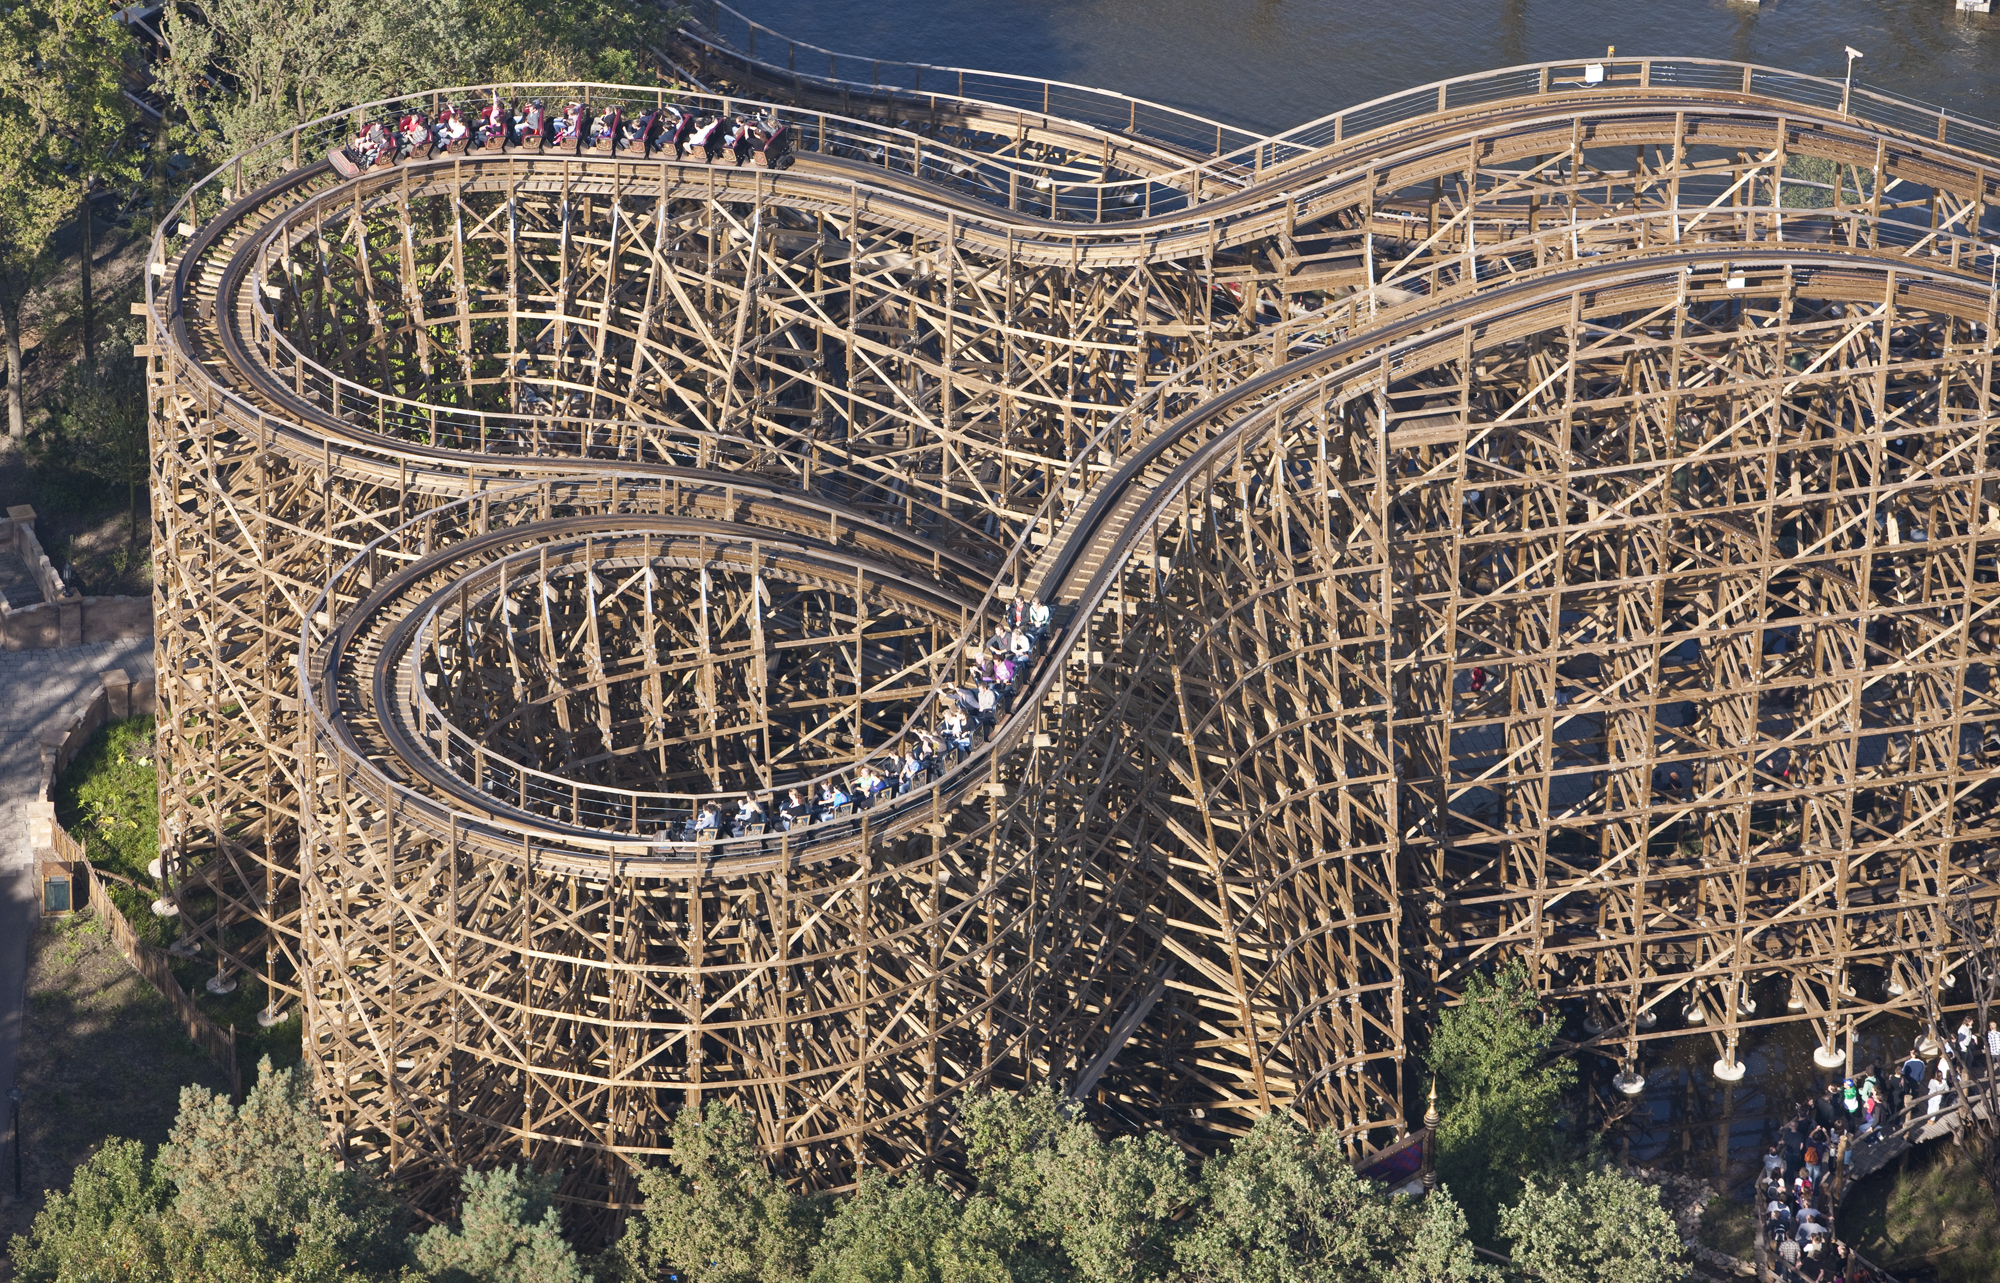 1 George And The Dragon Roller Coaster Hd Wallpapers